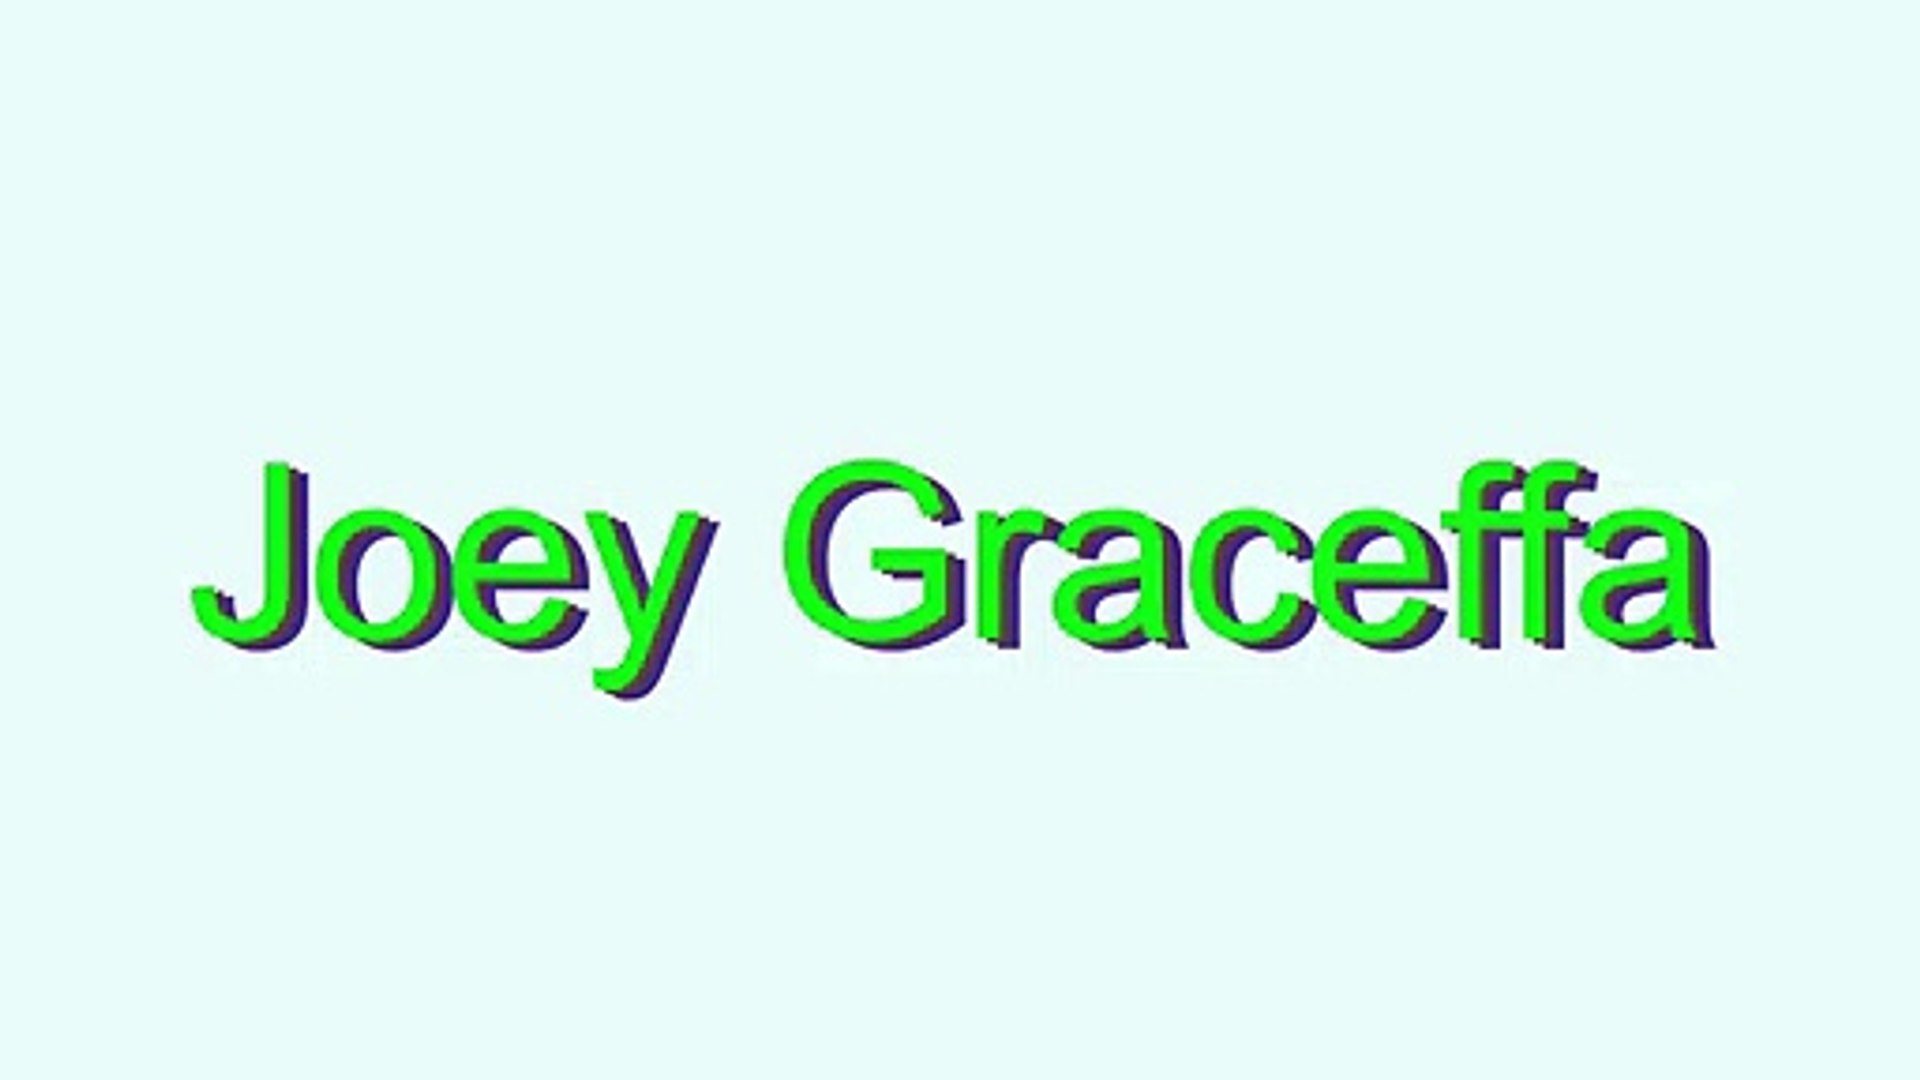 How to Pronounce Joey Graceffa